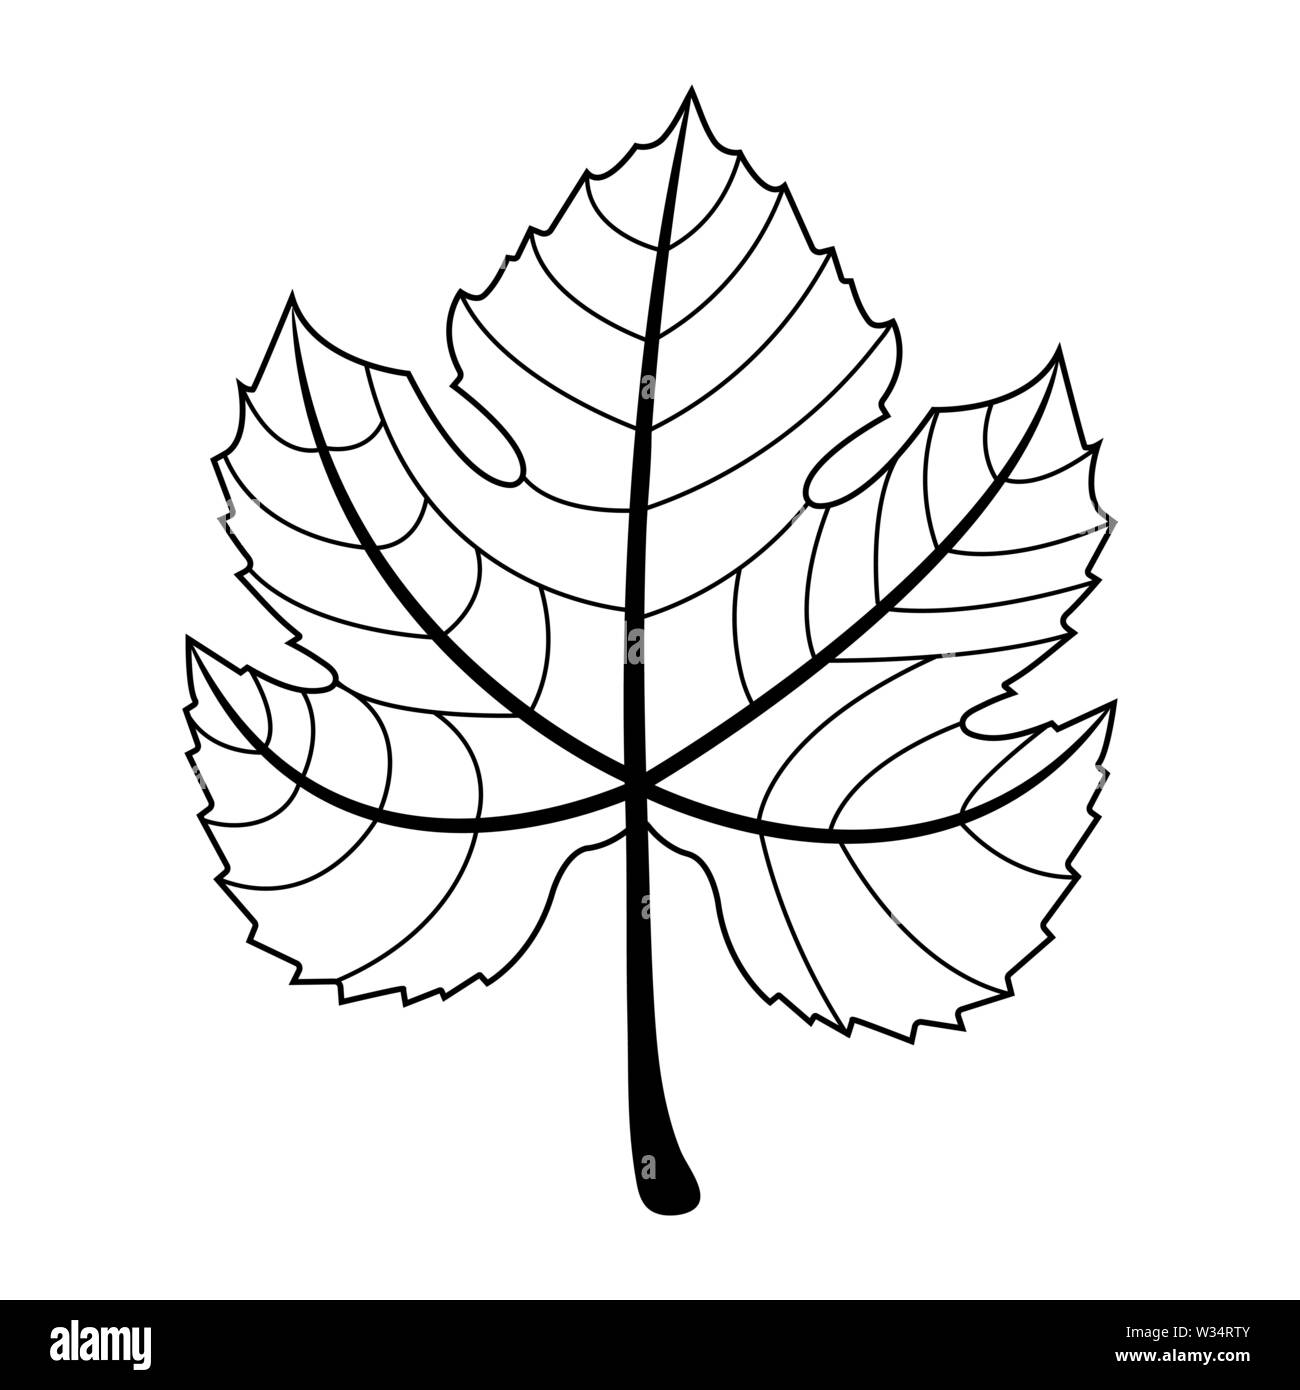 Wine Leaf Isolated On White Background Black Silhouette Of Grape Leaf Vector Illustration For Any Design Stock Vector Image Art Alamy